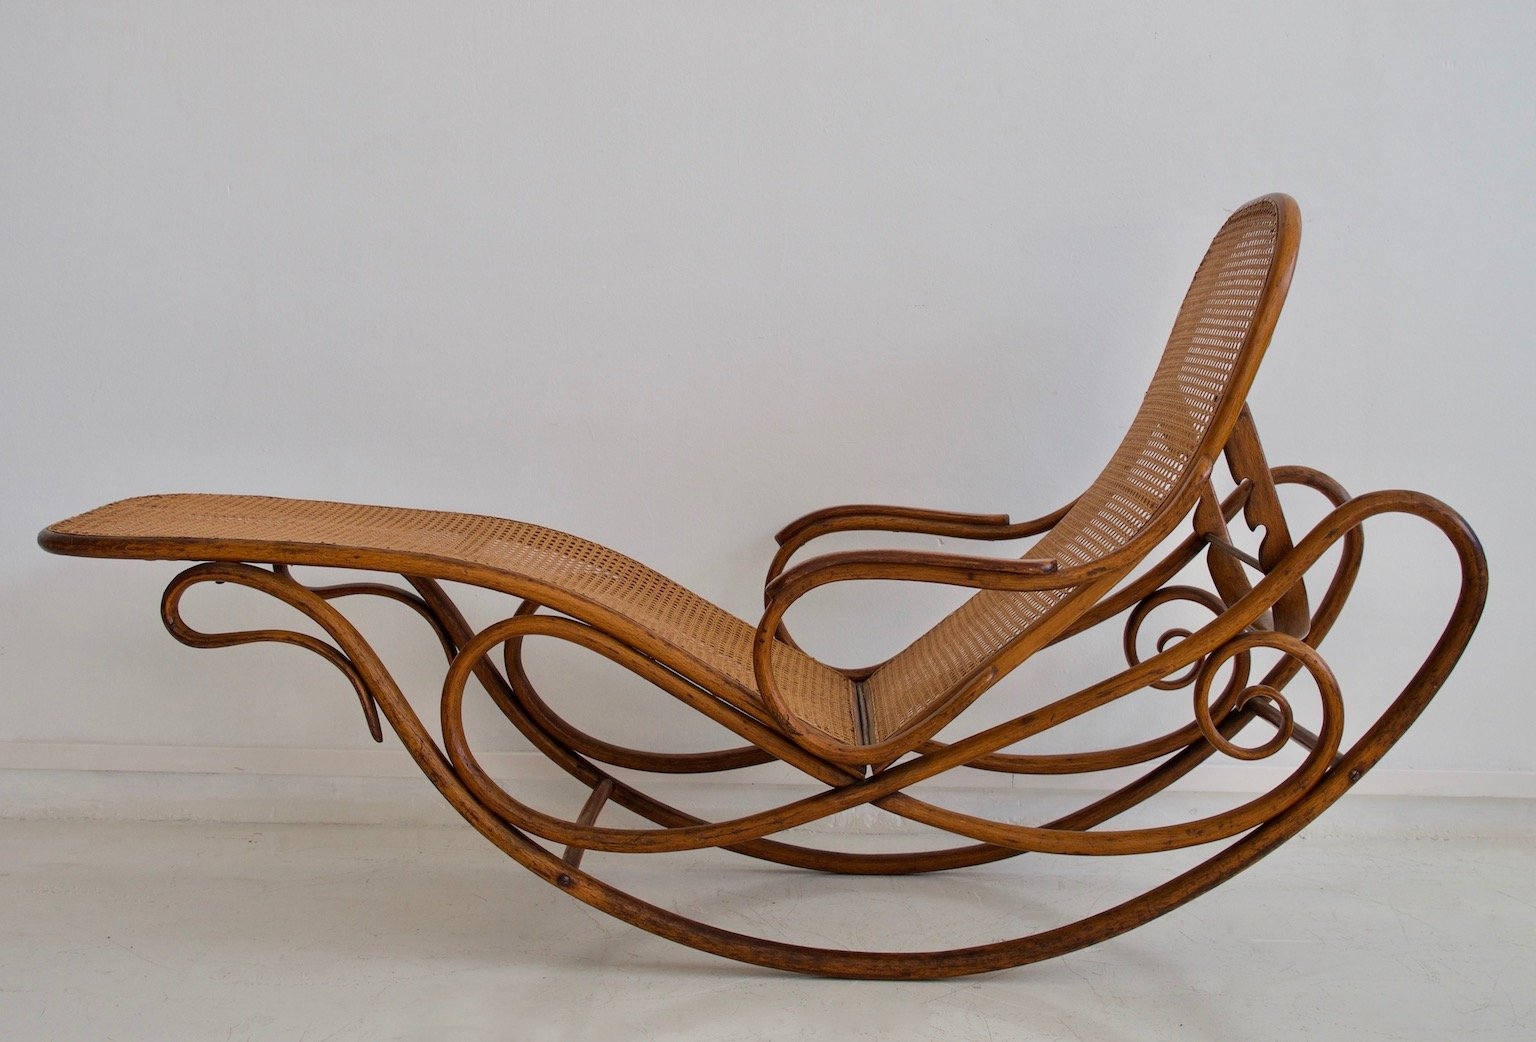 Antique Model 7500 Rocking Chair From Thonet For Sale At